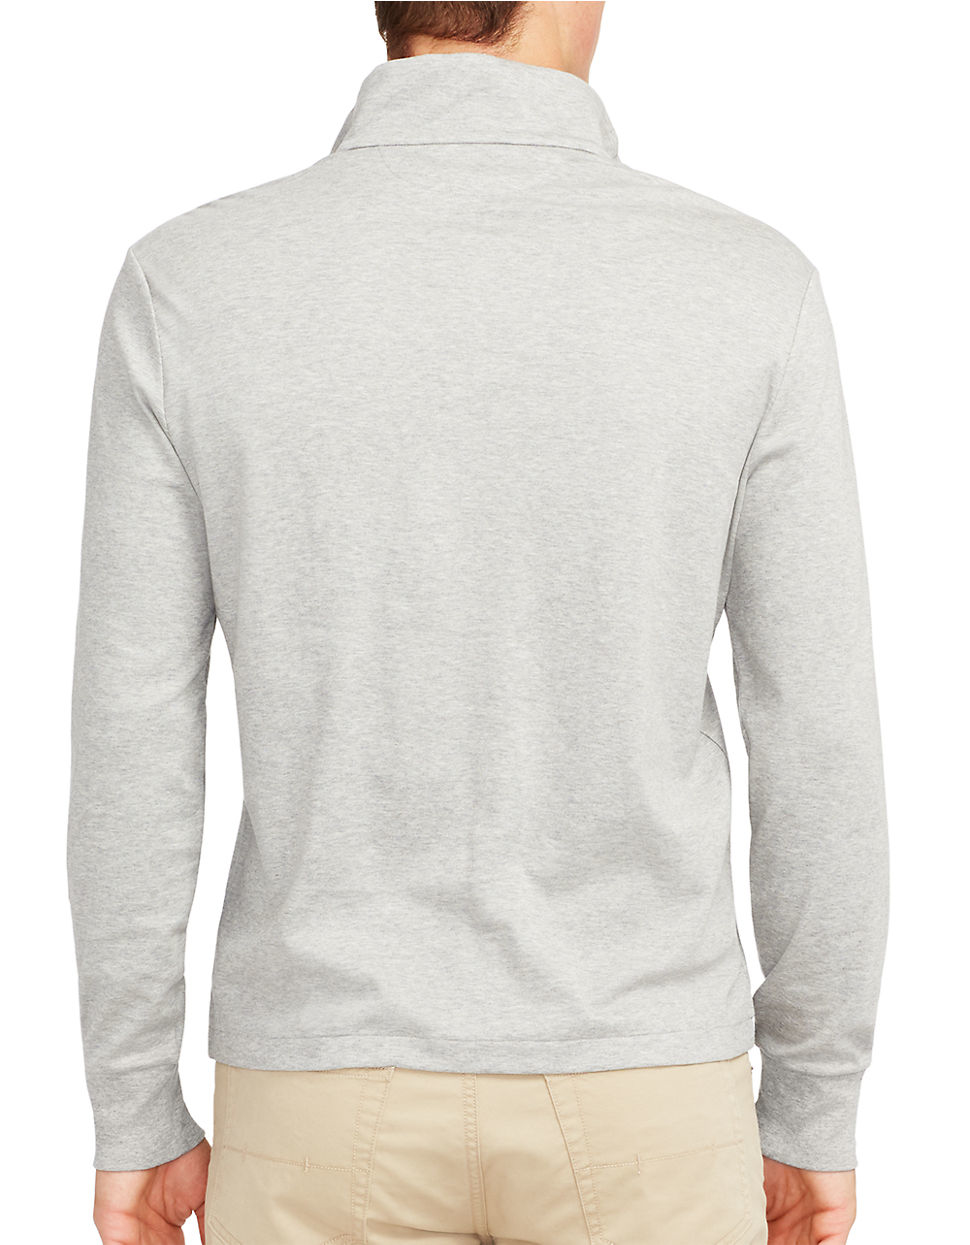 polo ralph lauren pima soft touch pullover in gray for men. Black Bedroom Furniture Sets. Home Design Ideas